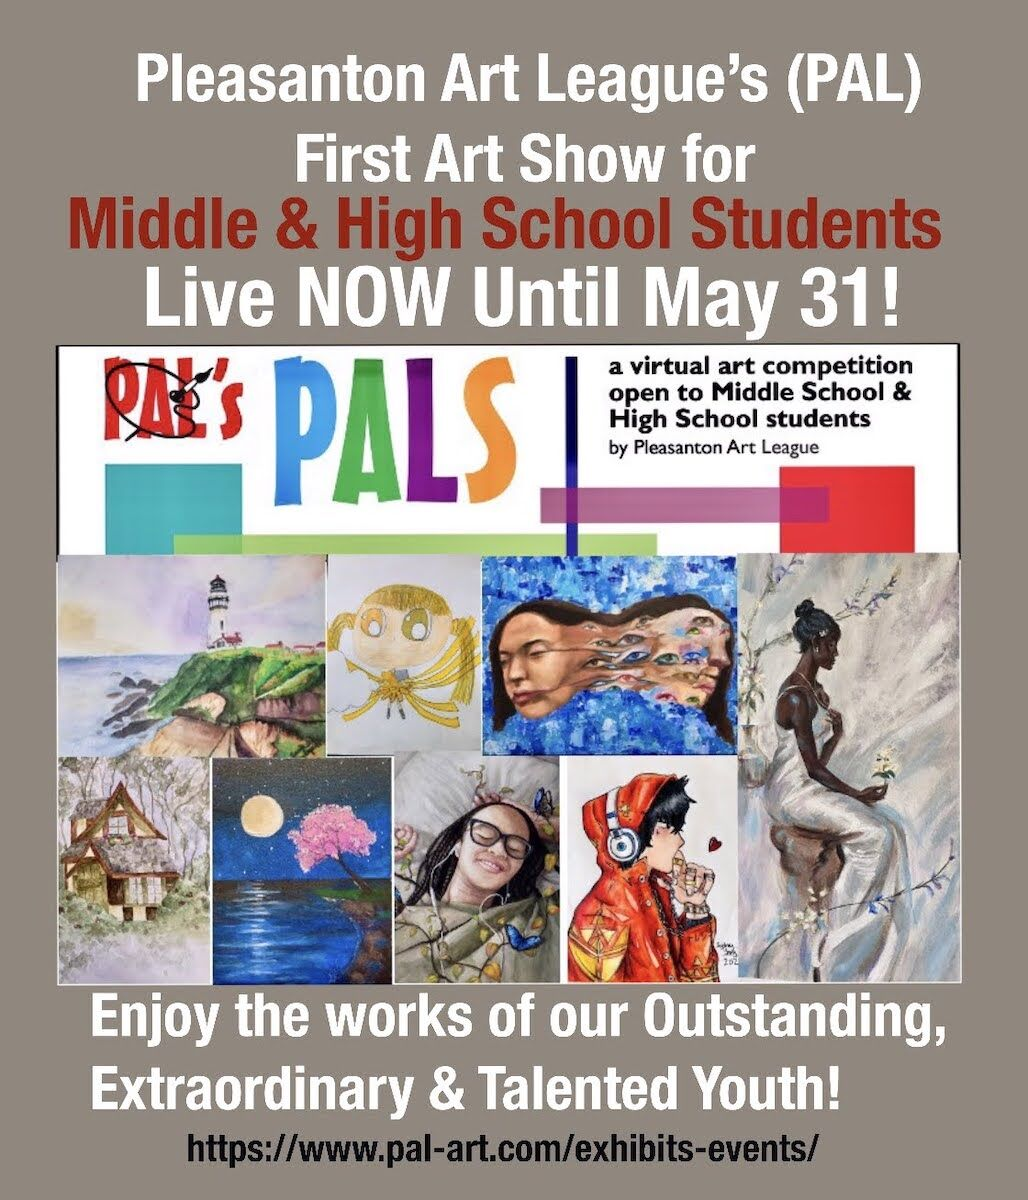 Enjoy PAL's Pals Show Now until May 31.